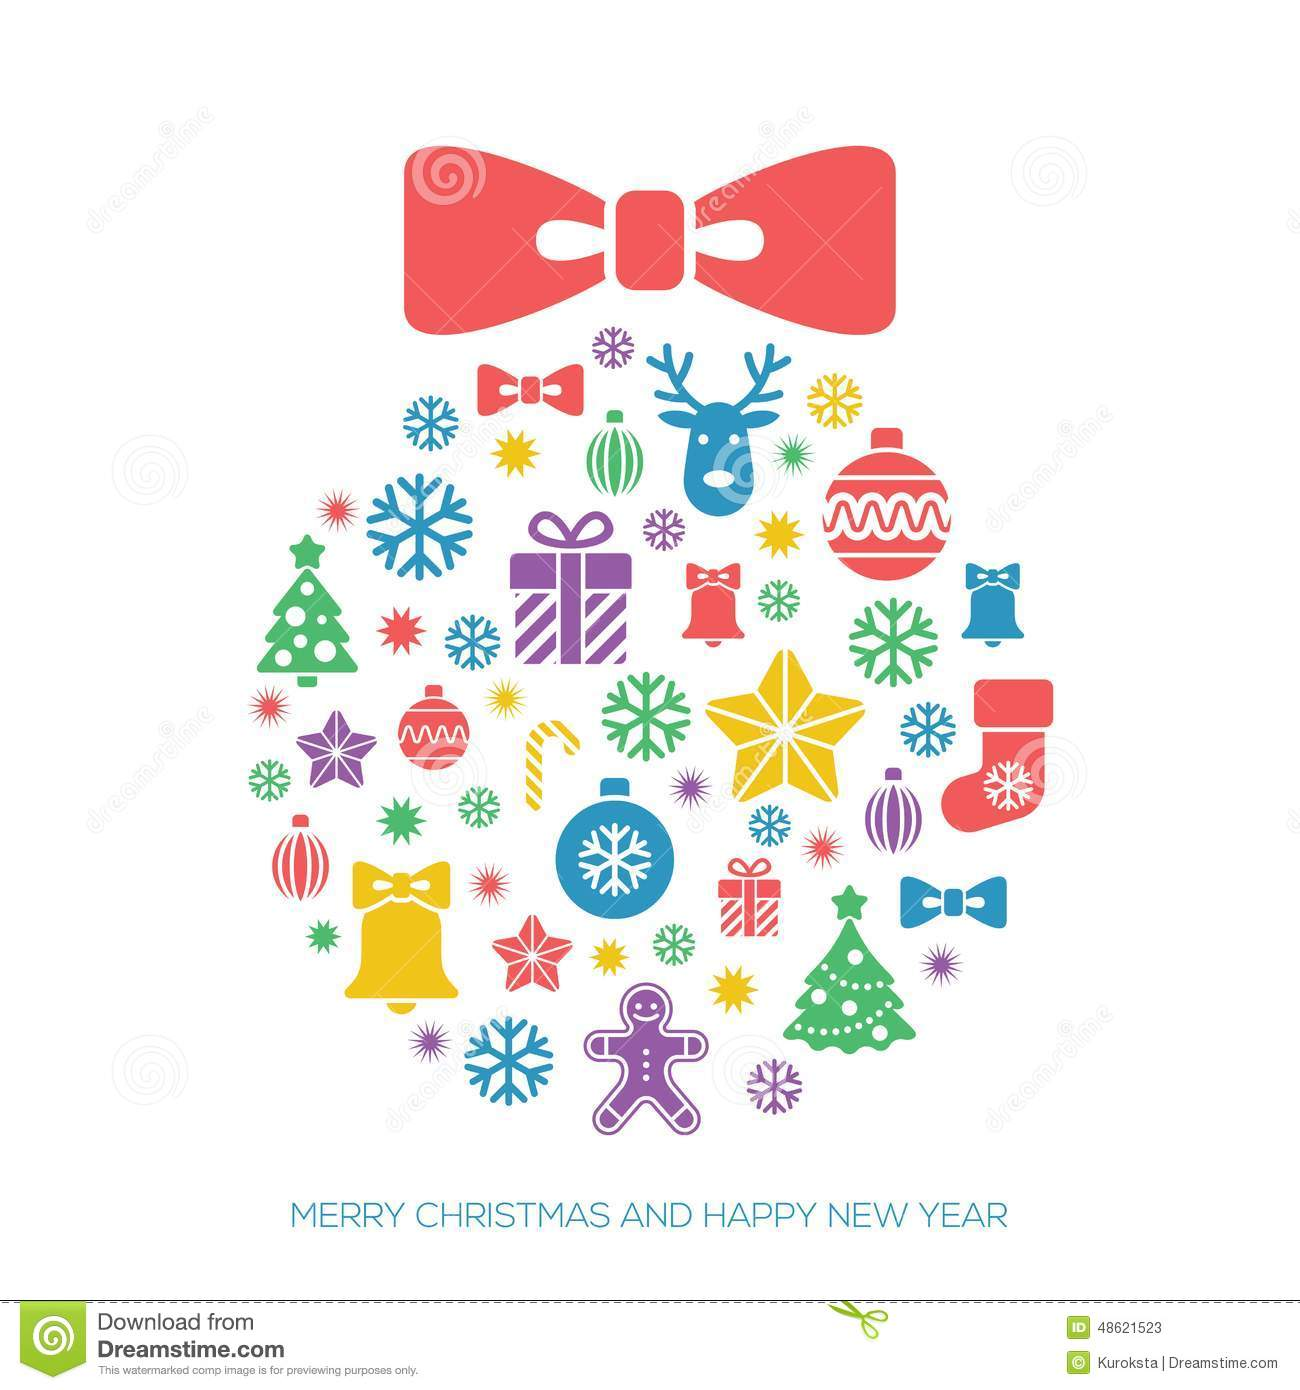 Christmas And New Year Greeting Card Template Stock Vector   Image RF6INtvH